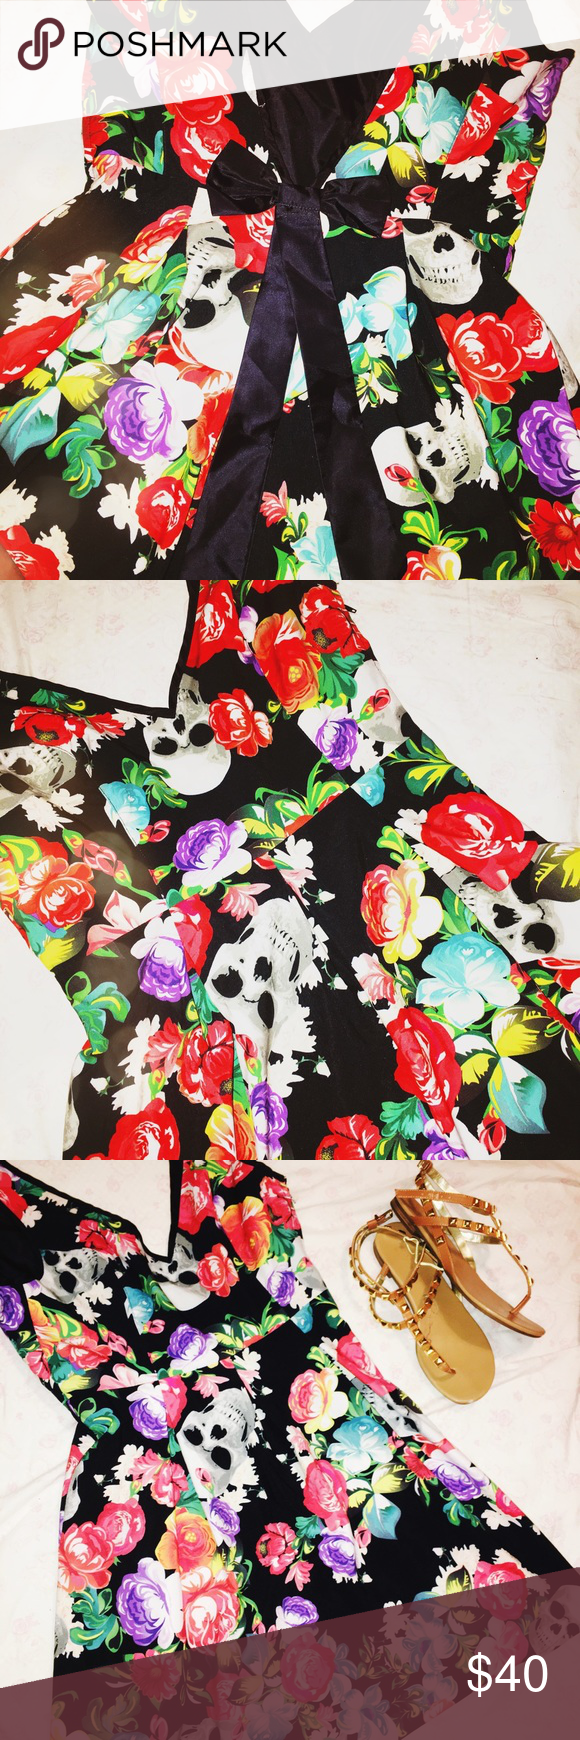 Bow back skulls and flowers dress Size S Bow deep V open back skulls and flowers dress Size S Brand tag is like 9 7 with a heart. So edgy. Rockabilly pinup style. Too fun! Dresses